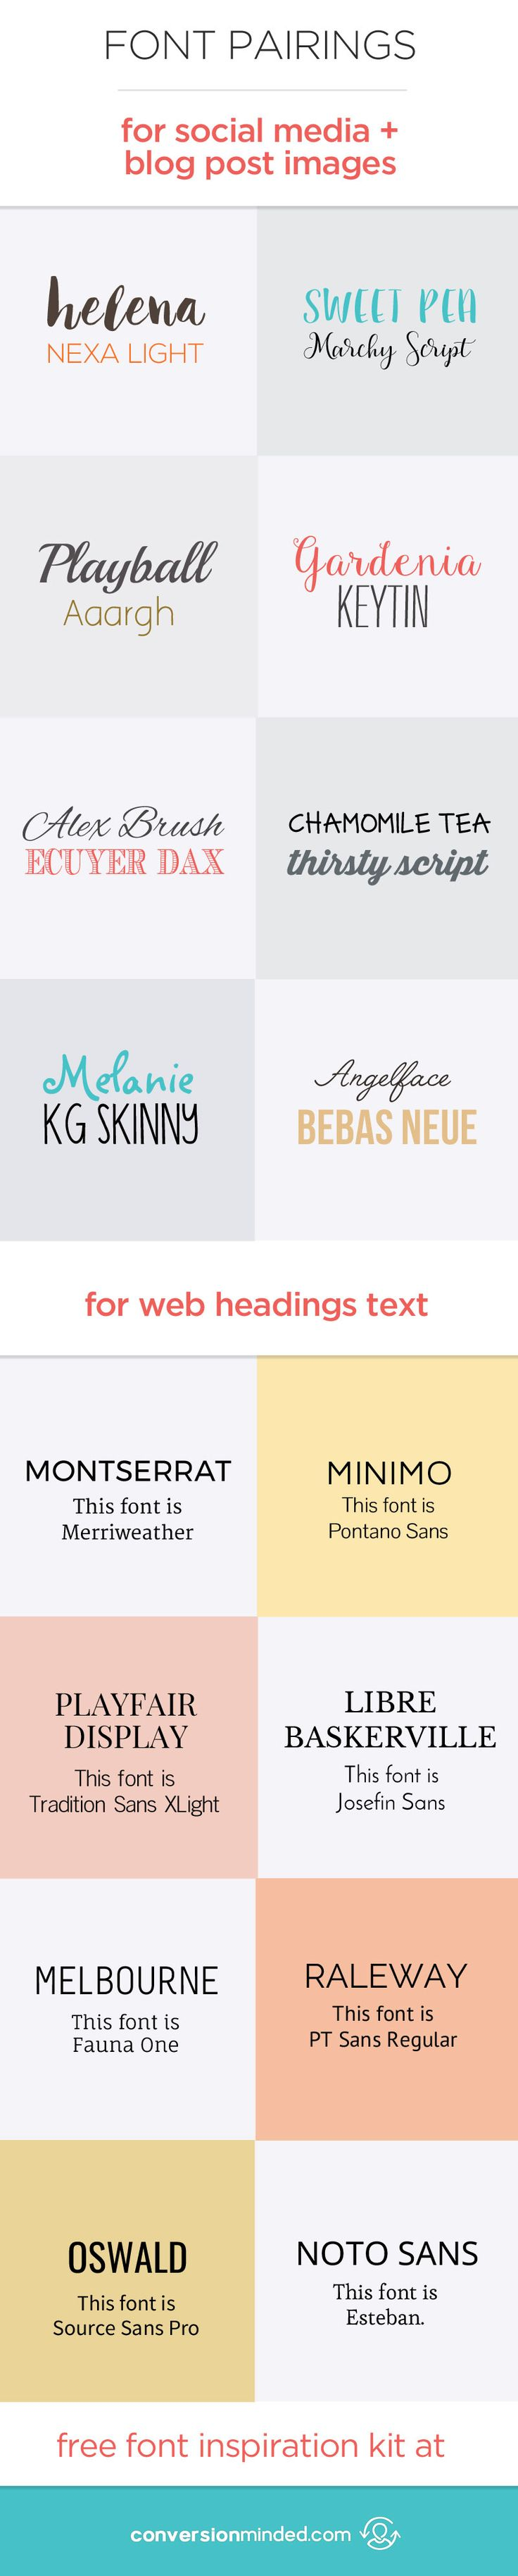 Font Pairings for the Web, Social Media and Blog Images! Plus, a FREE downloadable font inspiration kit to experiment with! Click through to see all the fonts!